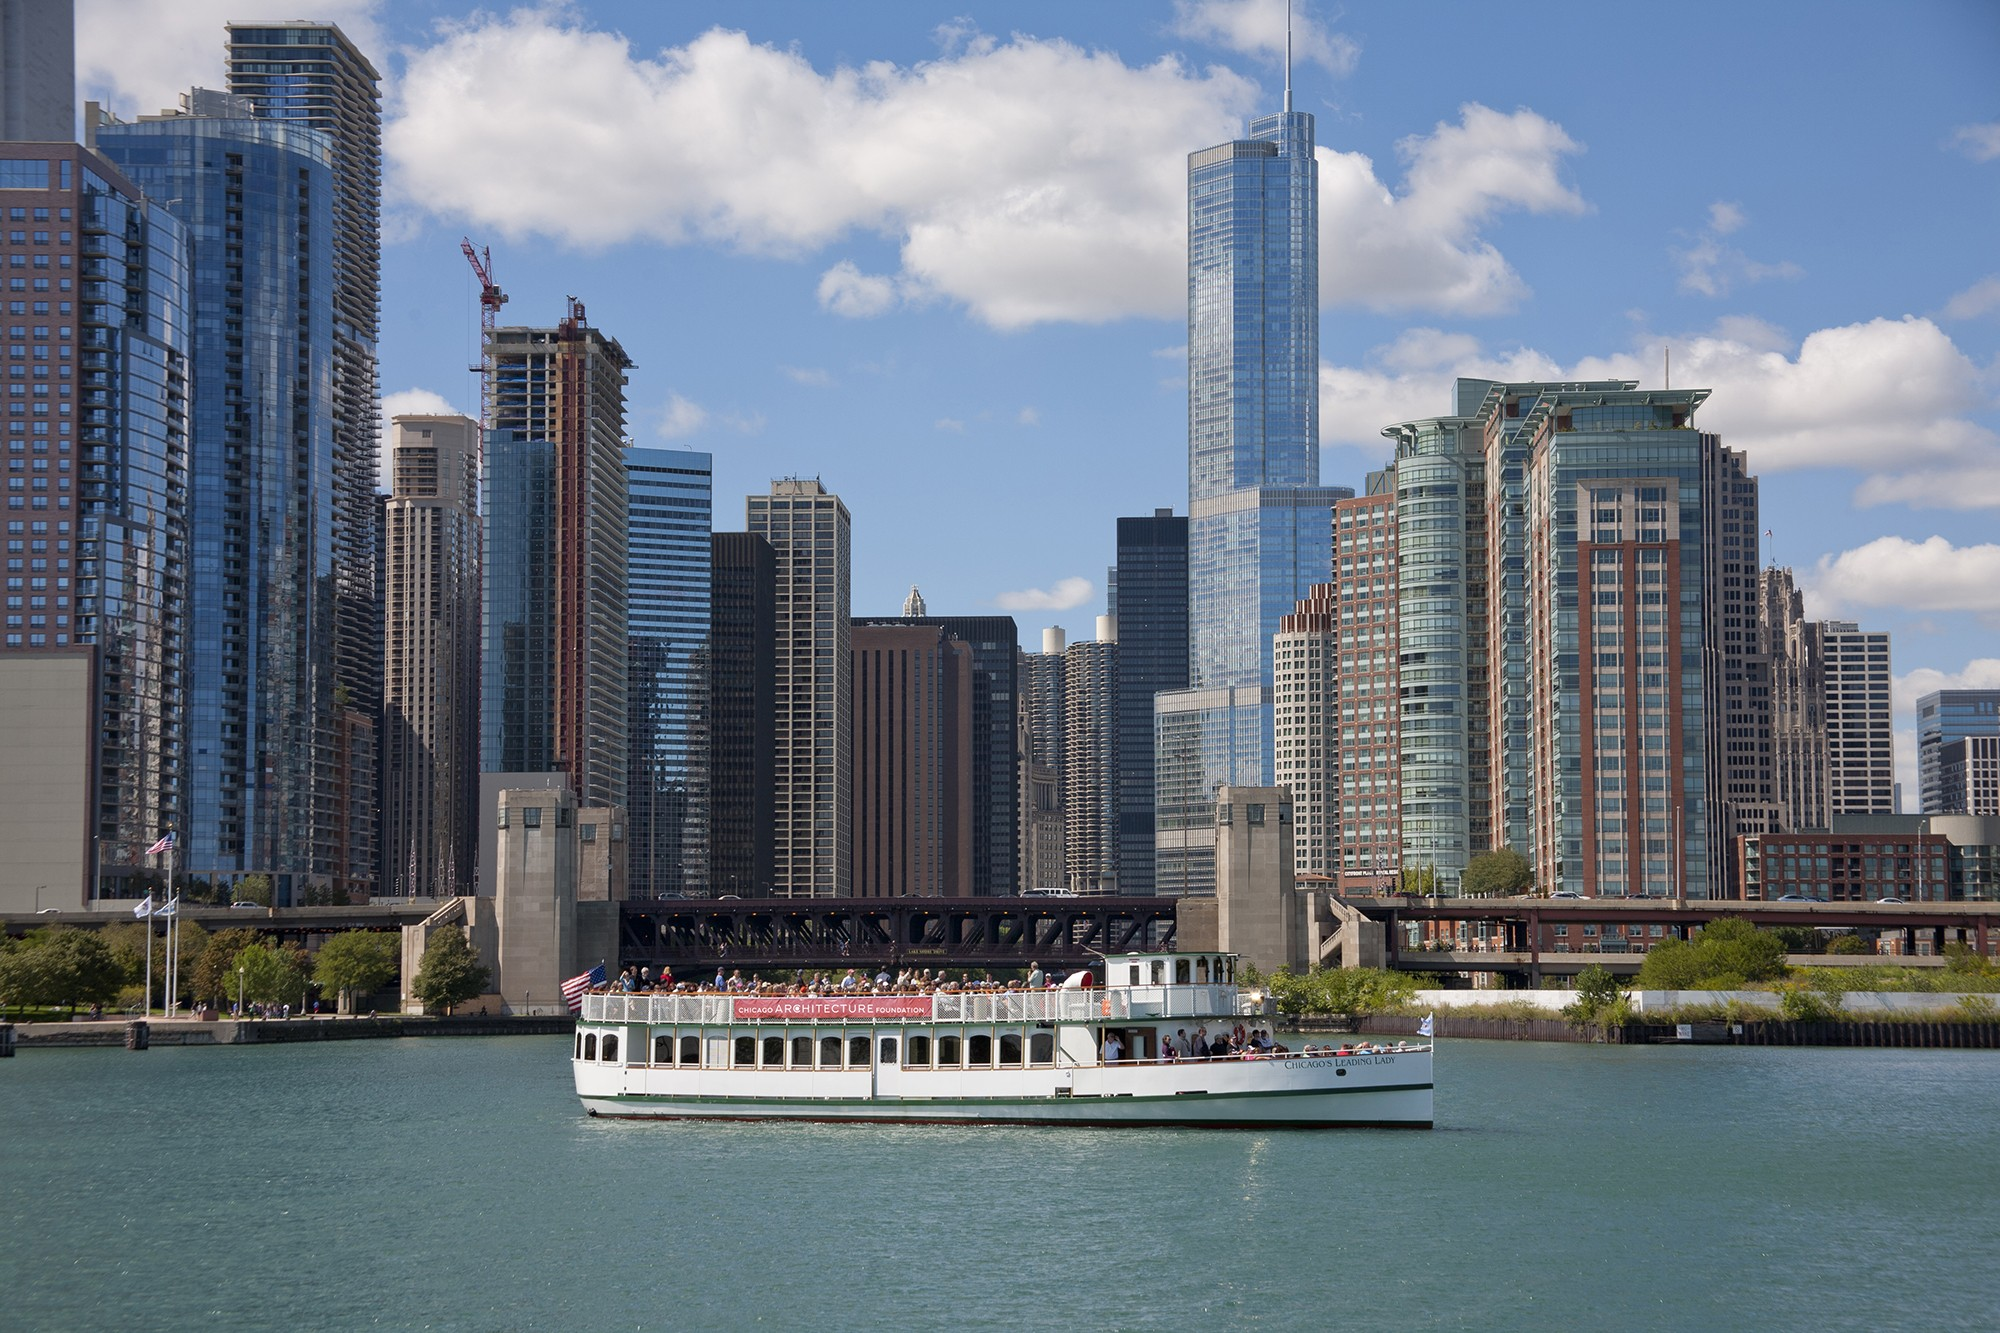 chicago architecture foundation river cruise aboard